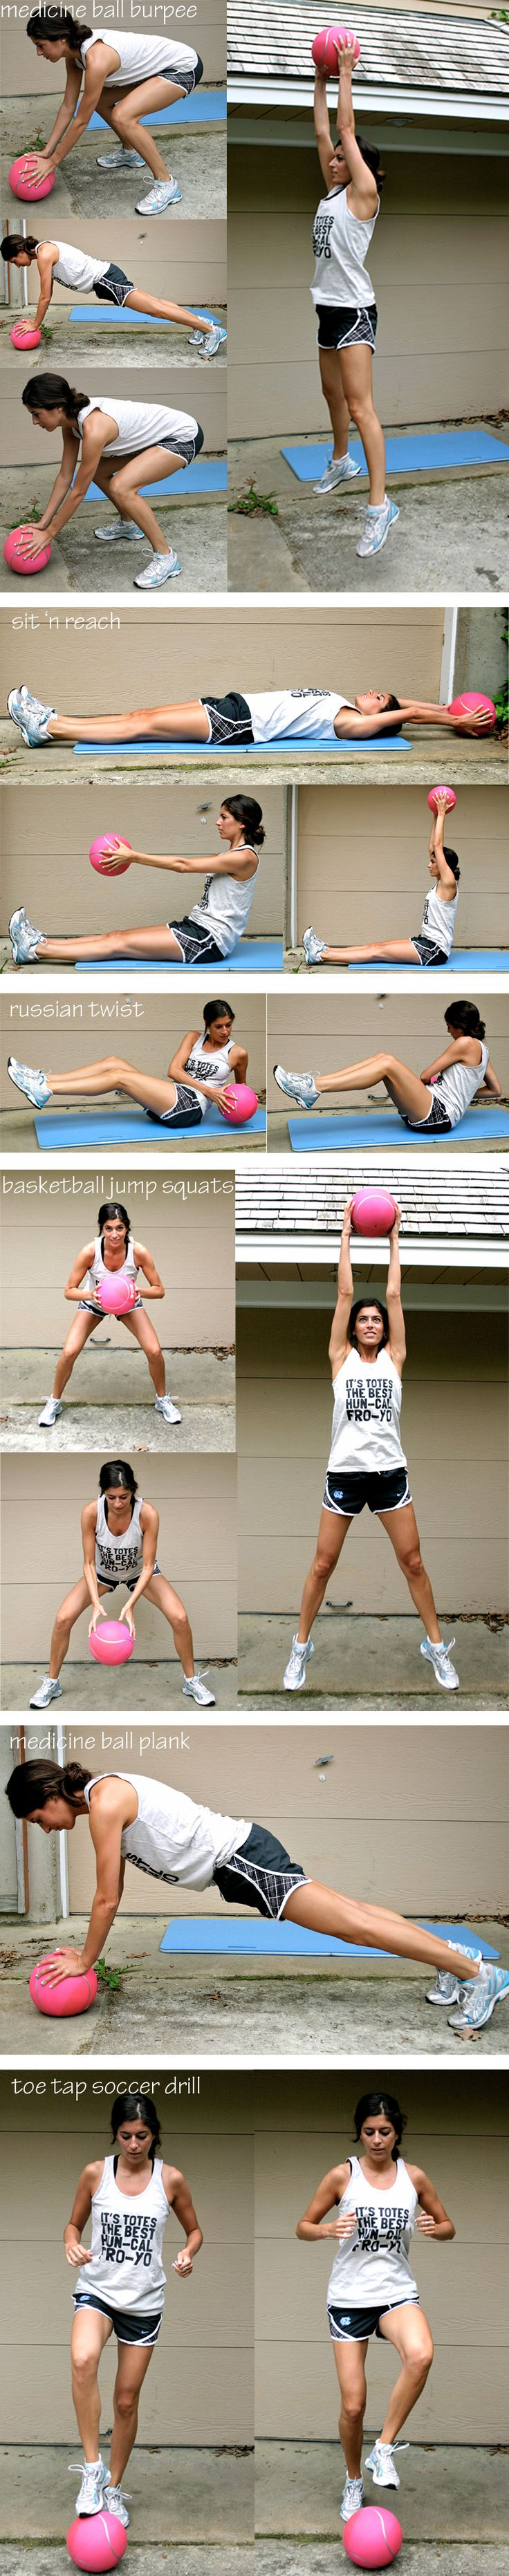 medicine ball interval workout Visit my website to see more exercises and